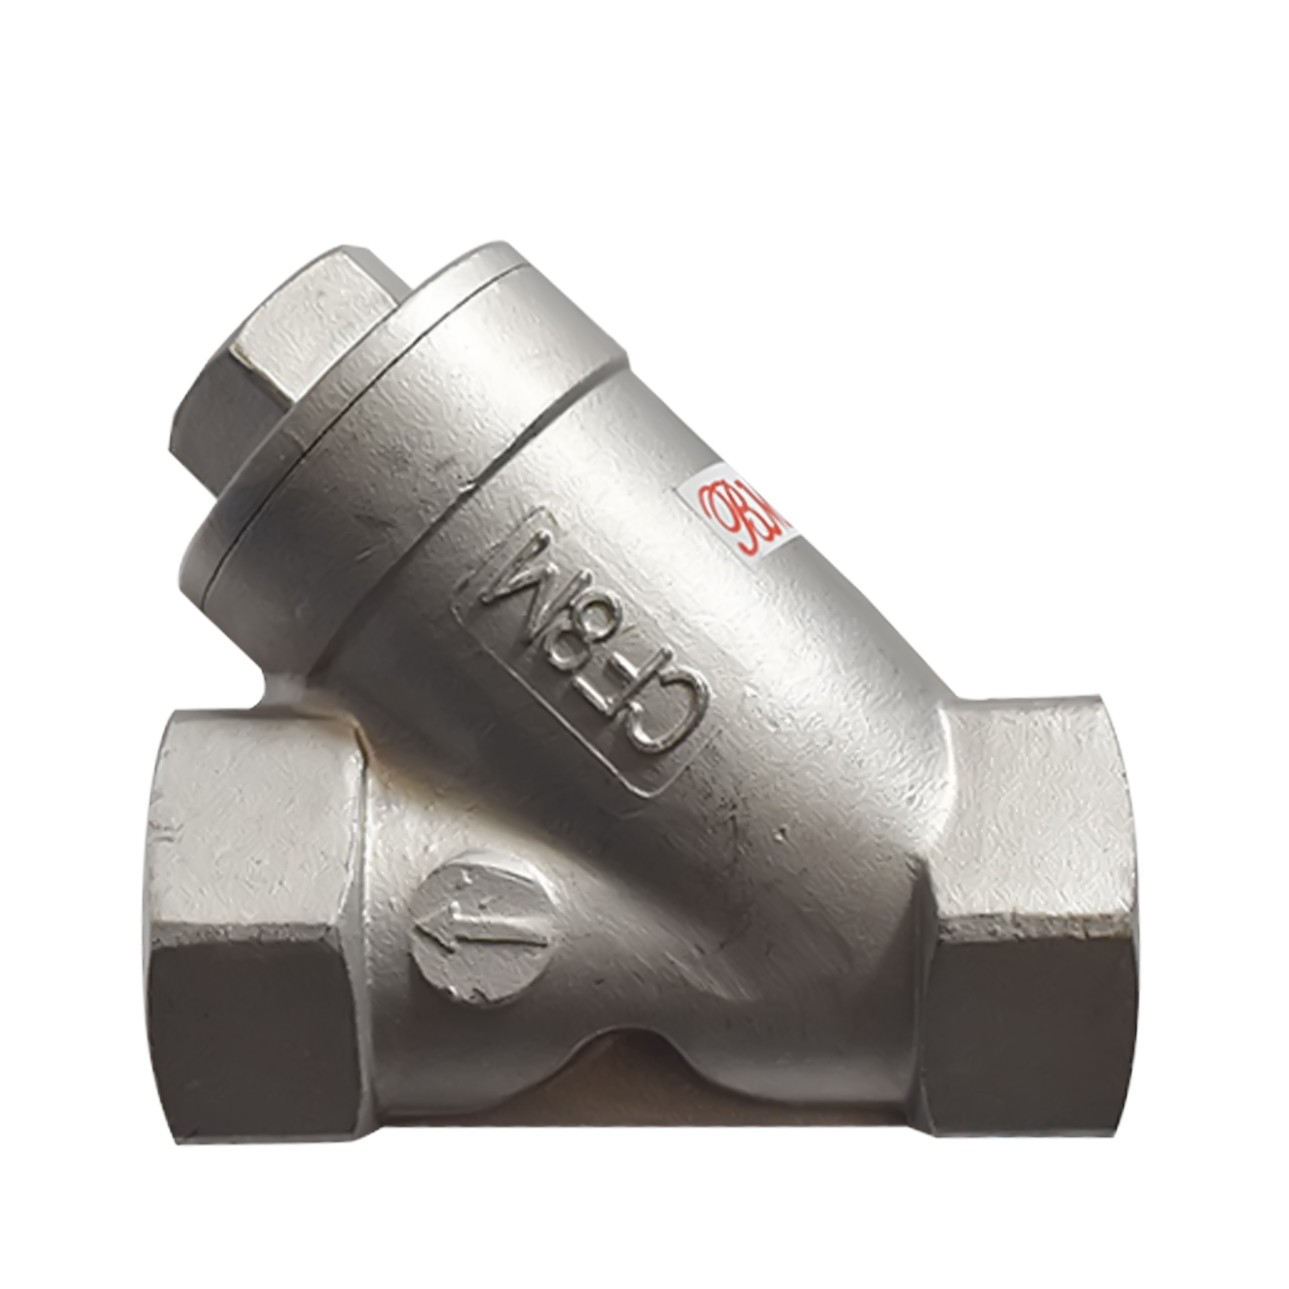 VTV Class 200 Y Strainer Size 2inch Stainless Steel